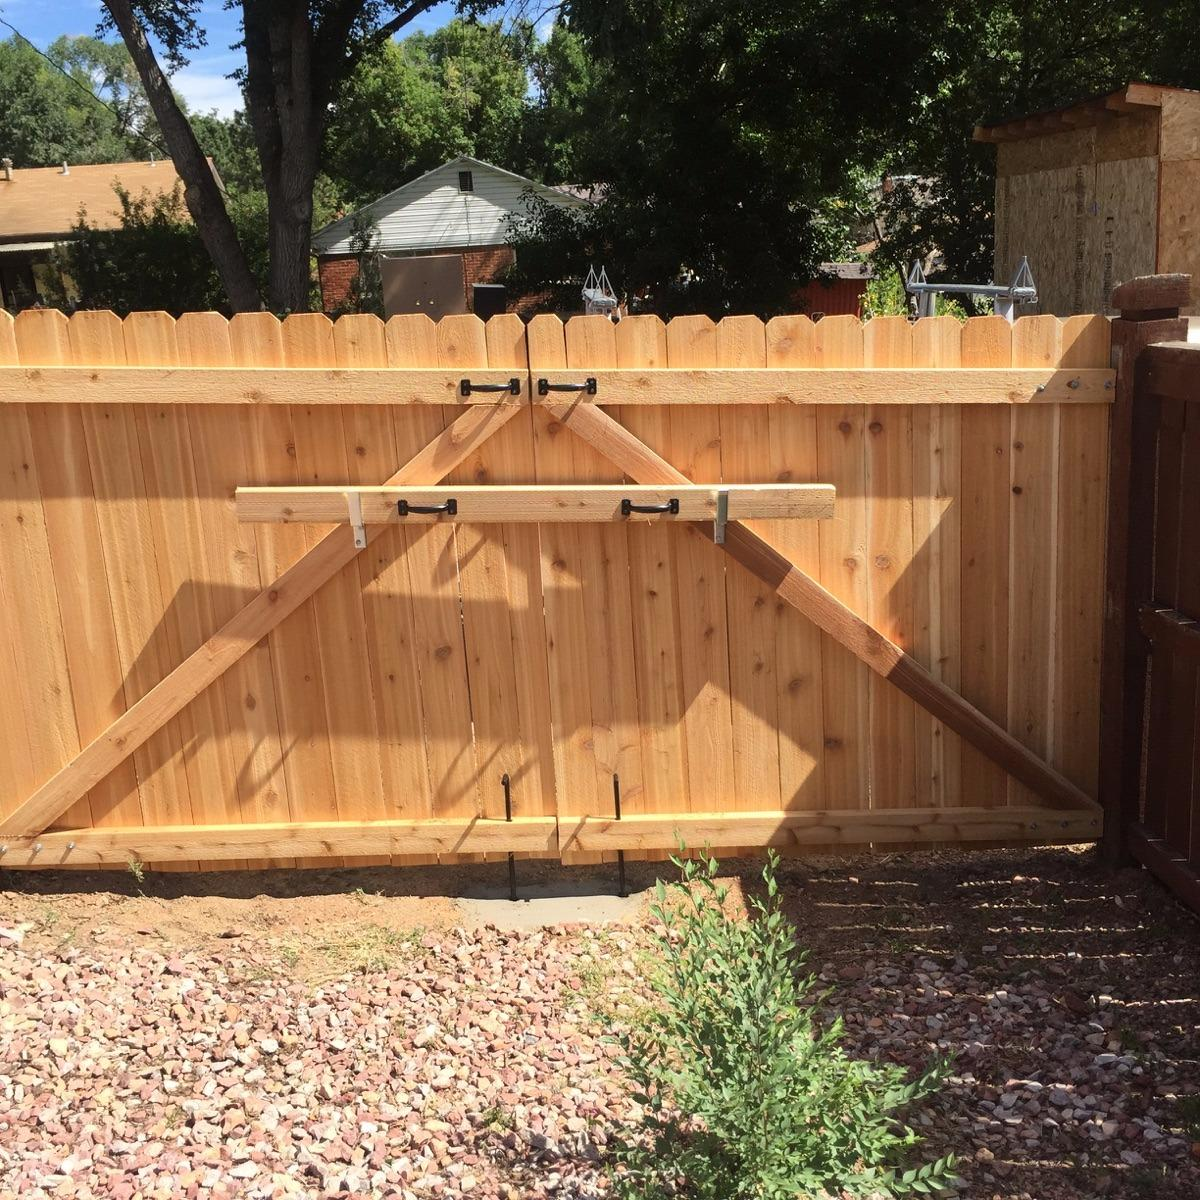 Back To Life Deck and Fence Repair Company in Colorado Springs